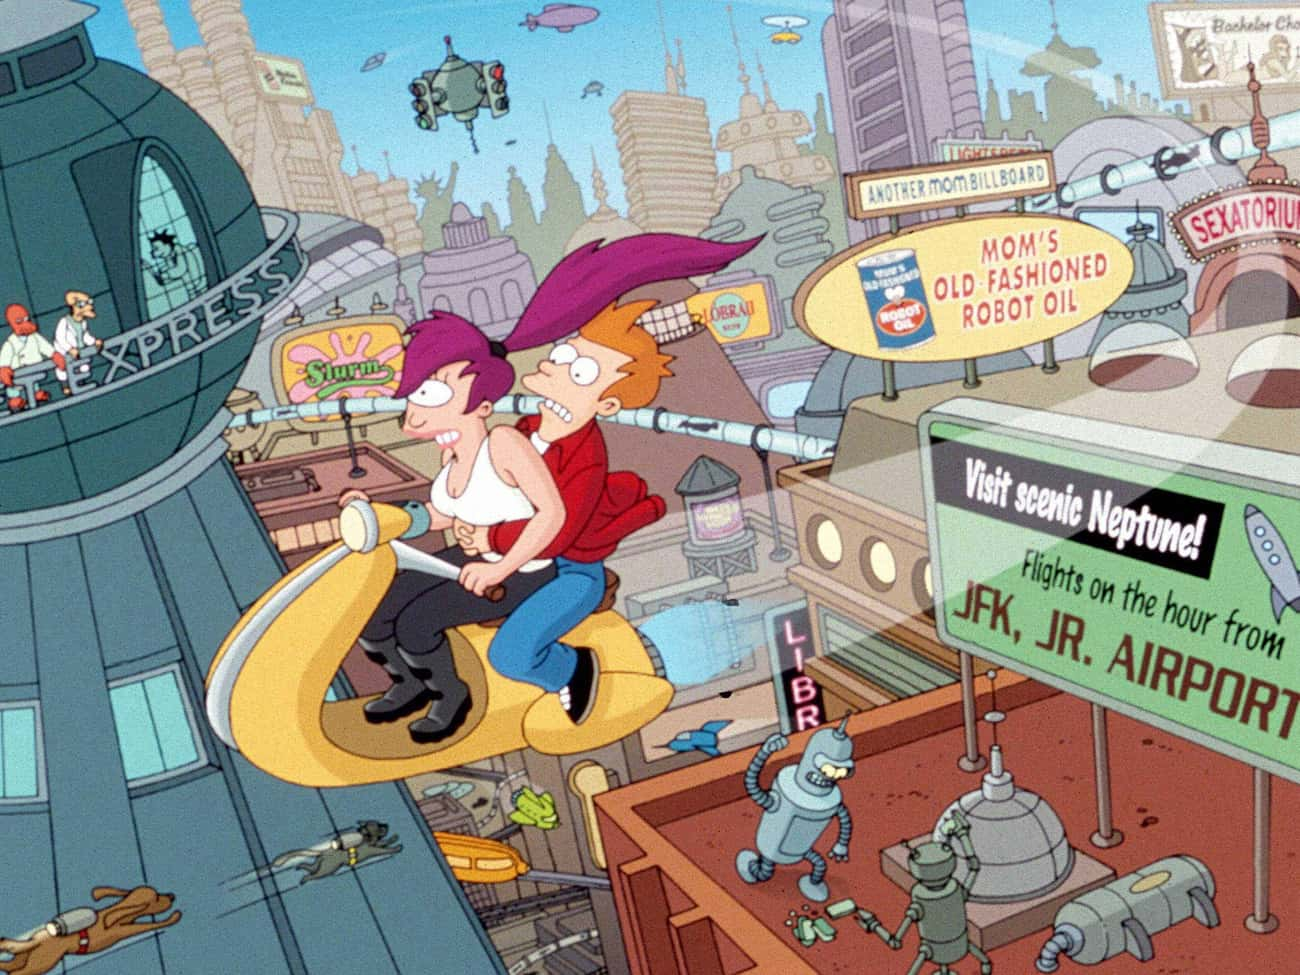 Futurama is listed (or ranked) 3 on the list The Best TV Shows To Leave On In The Background